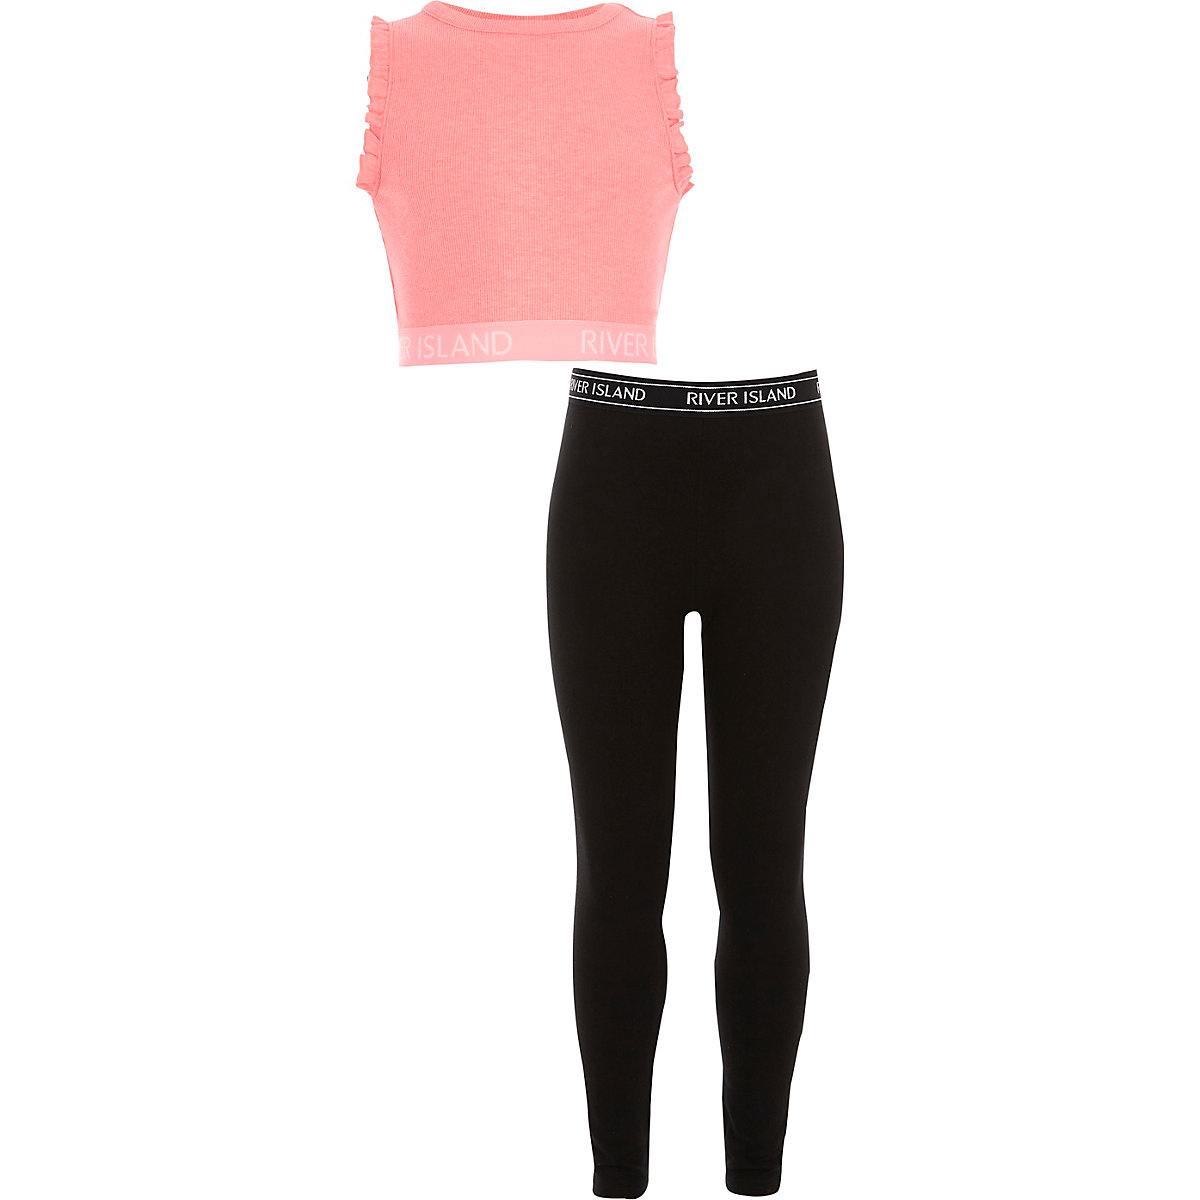 Girls RI pink crop top and leggings outfit